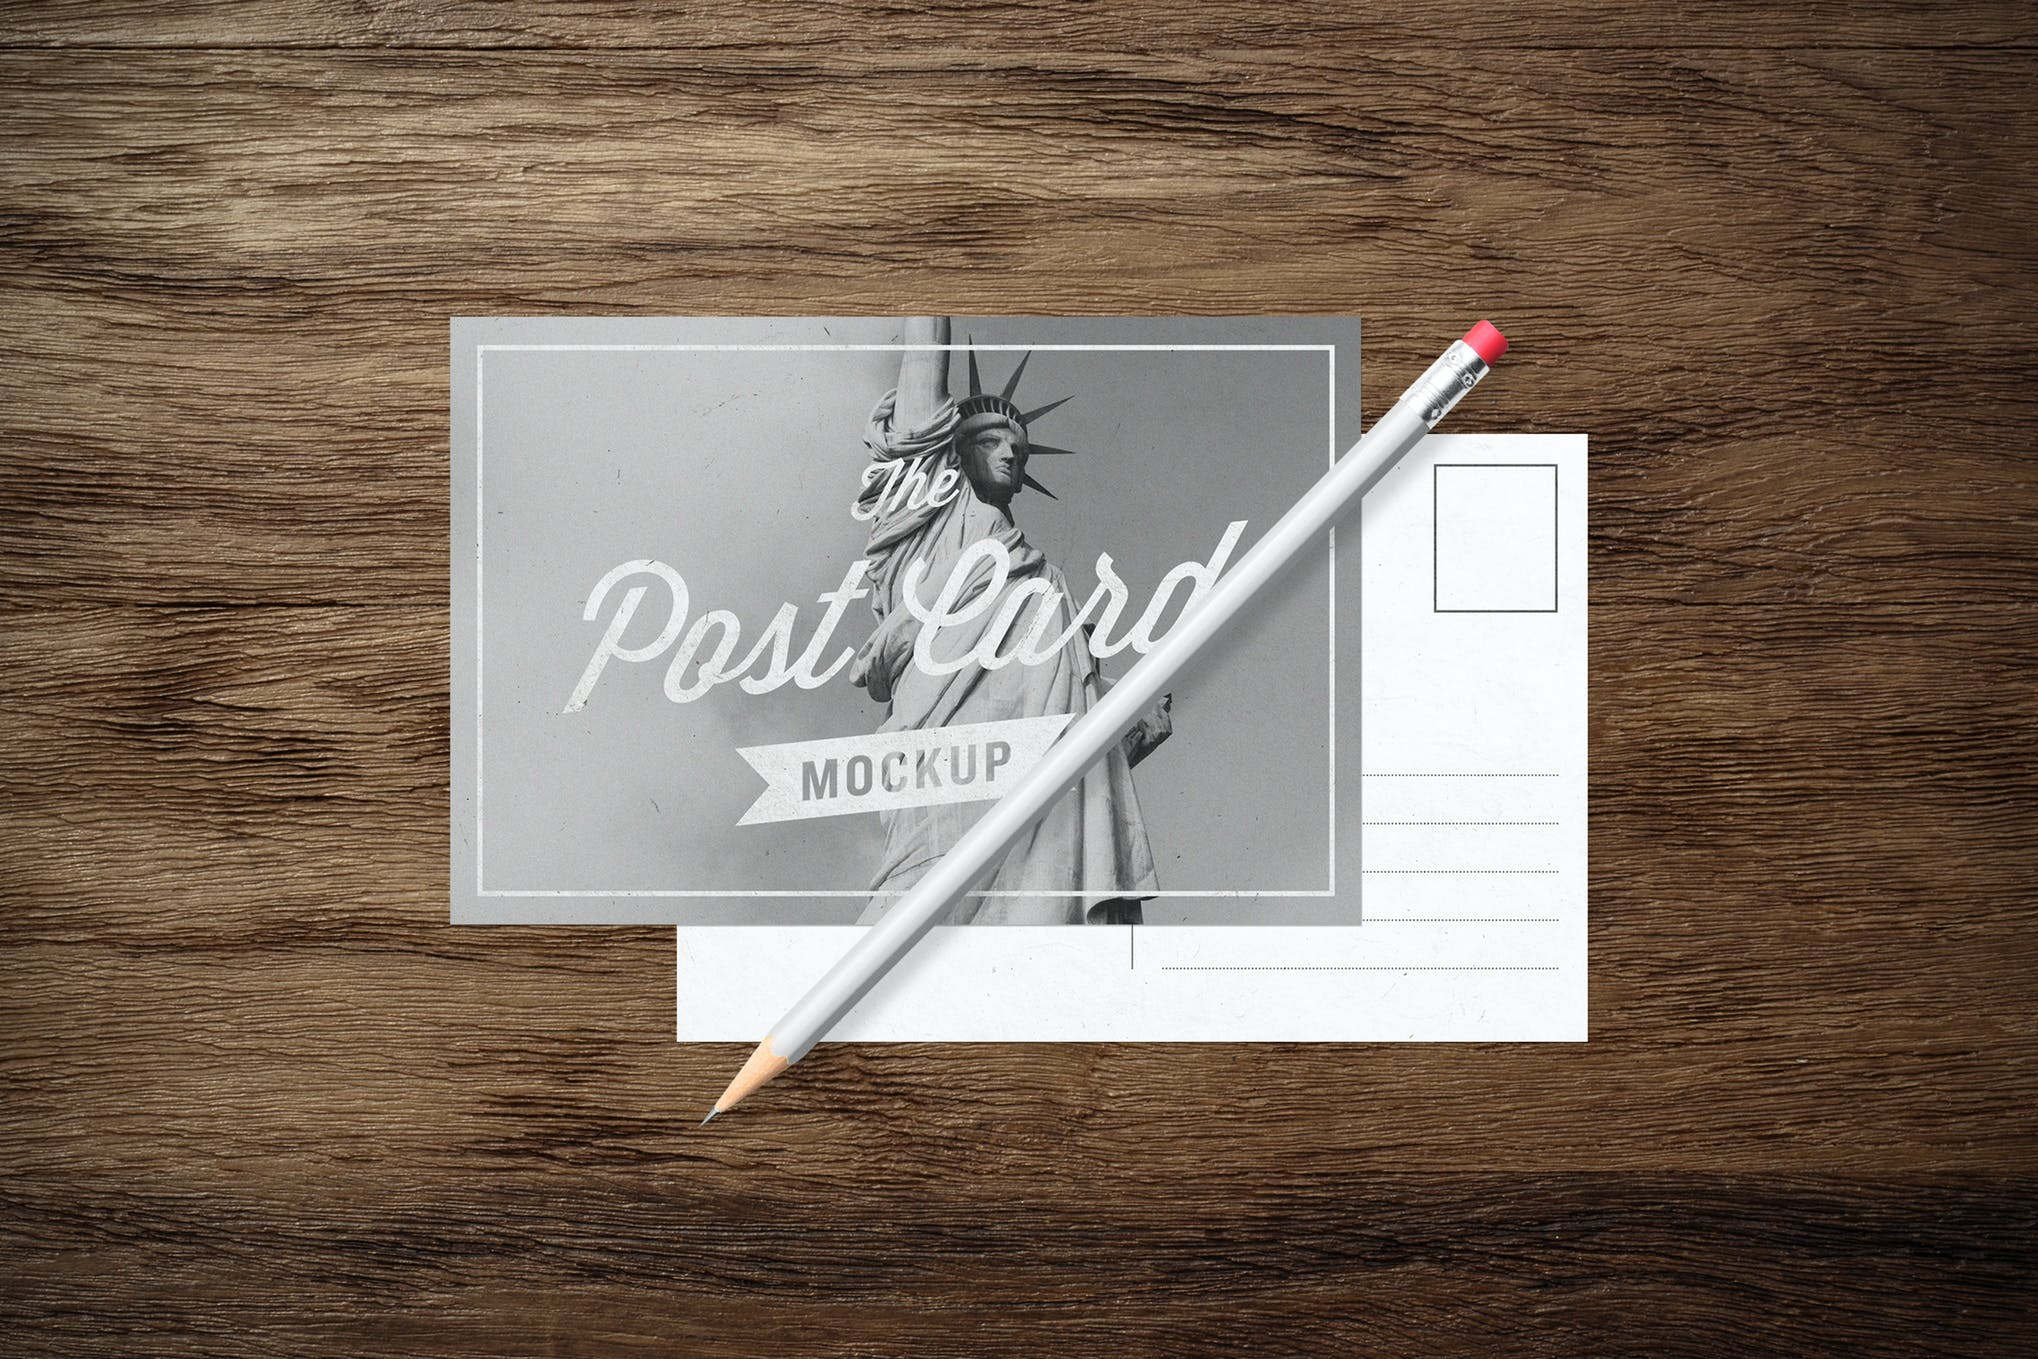 Mockup - Greeting Cards & Envelope by blackpattern on Envato Elements